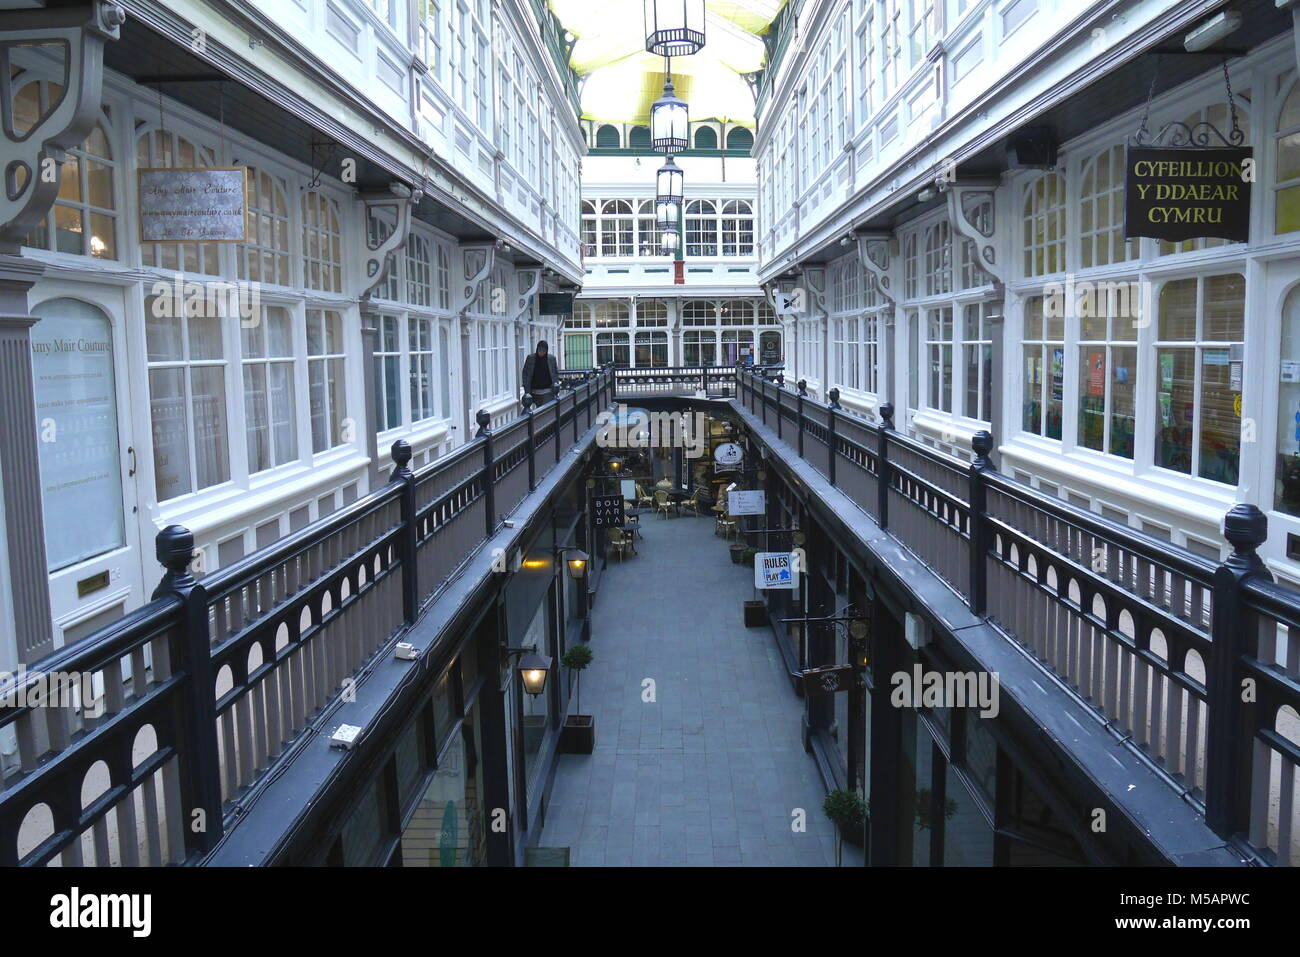 The Castle Arcade balcony, or gallery, with small shops, Cardiff, Wales, United Kingdom - Stock Image